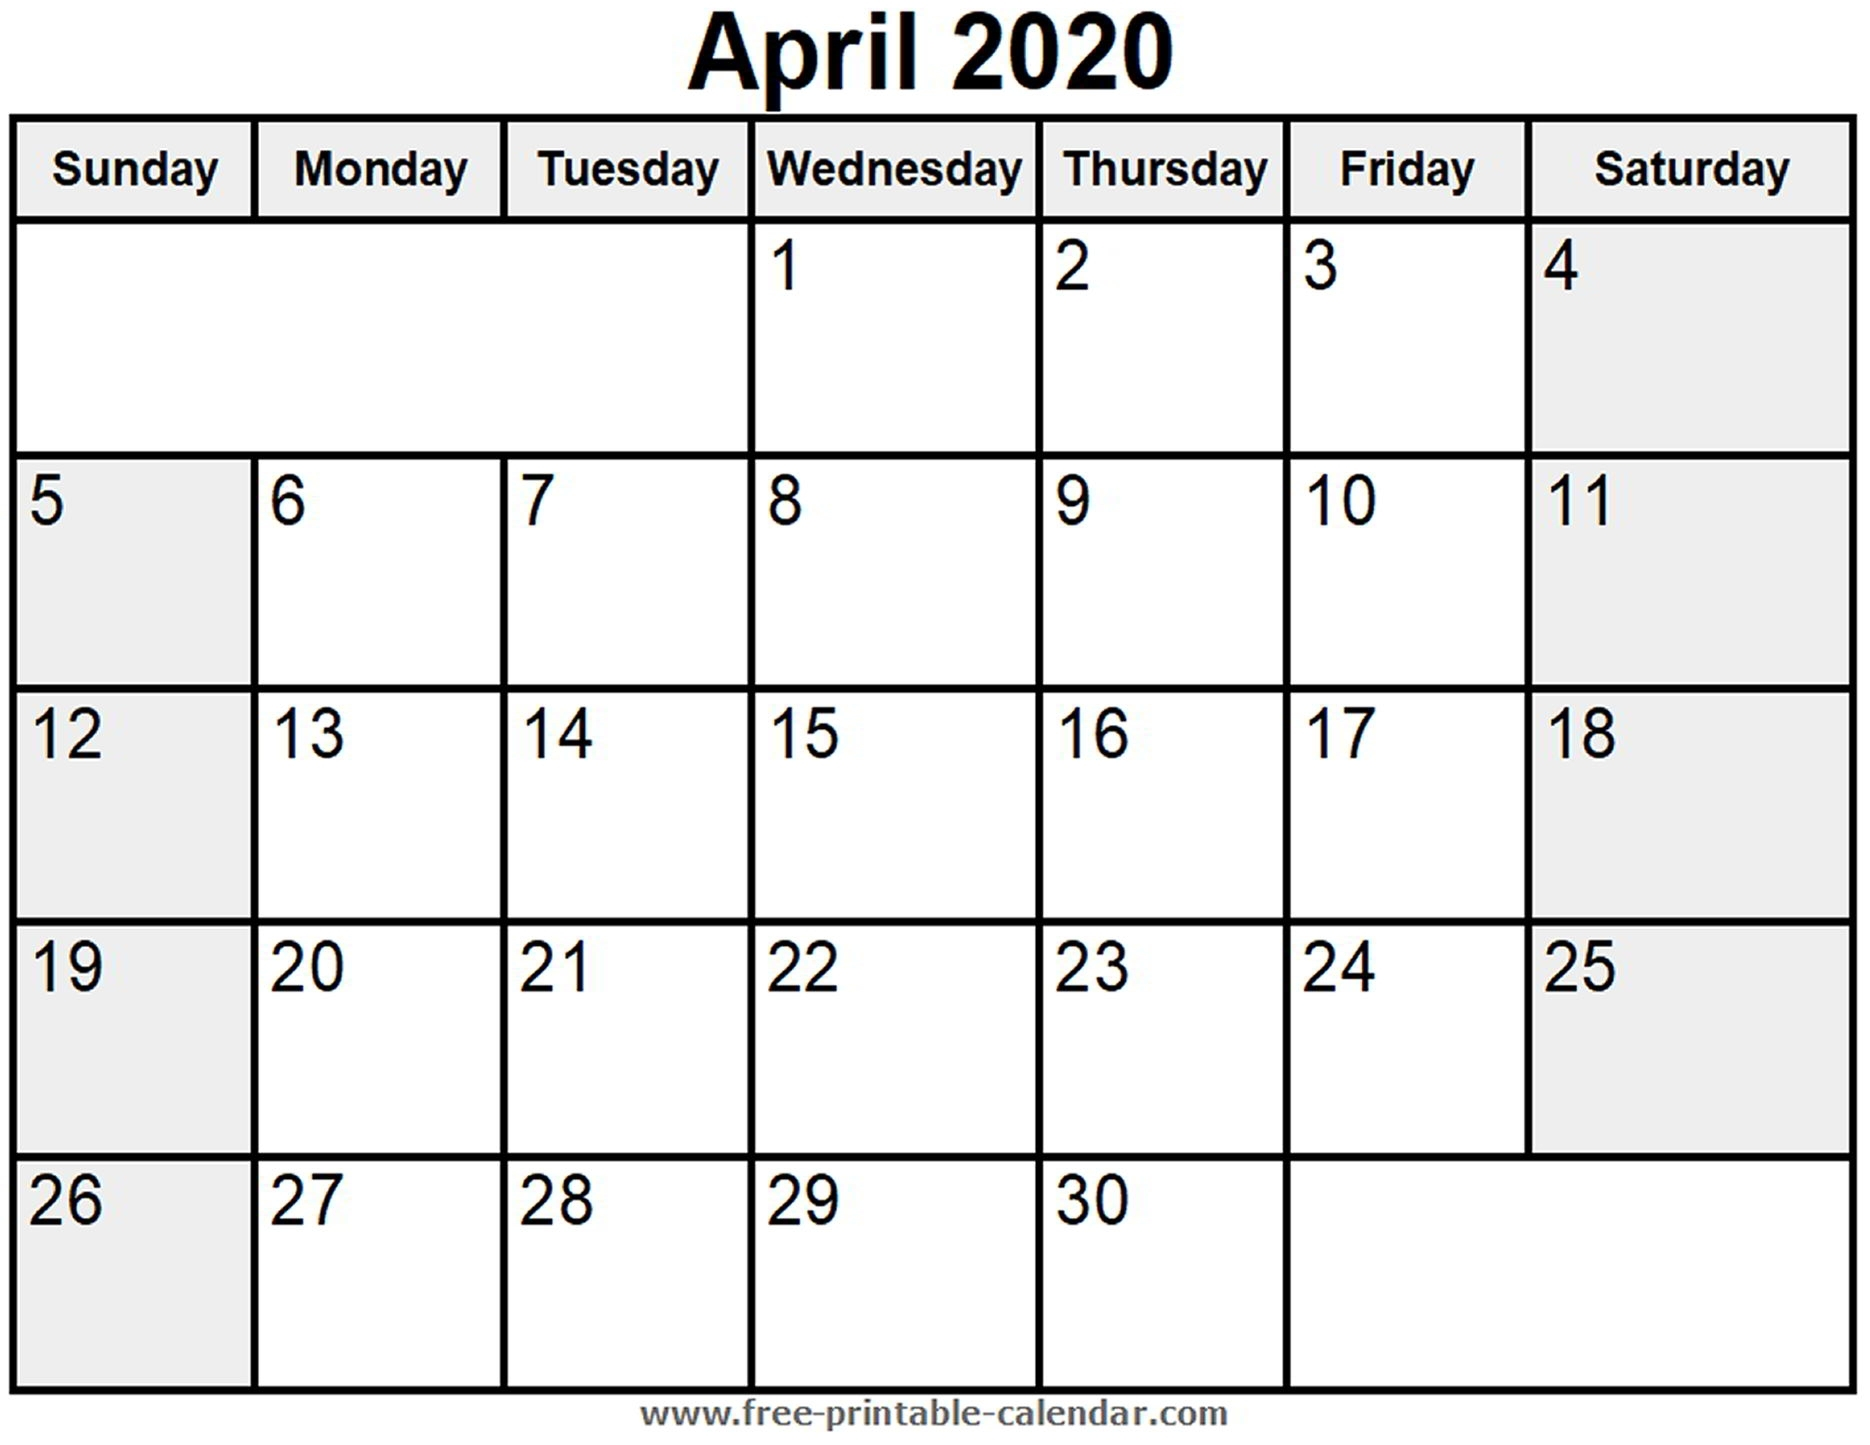 Printable April 2020 Calendar - Free-Printable-Calendar in Printable Calendar 2020 Monthly With Holidays